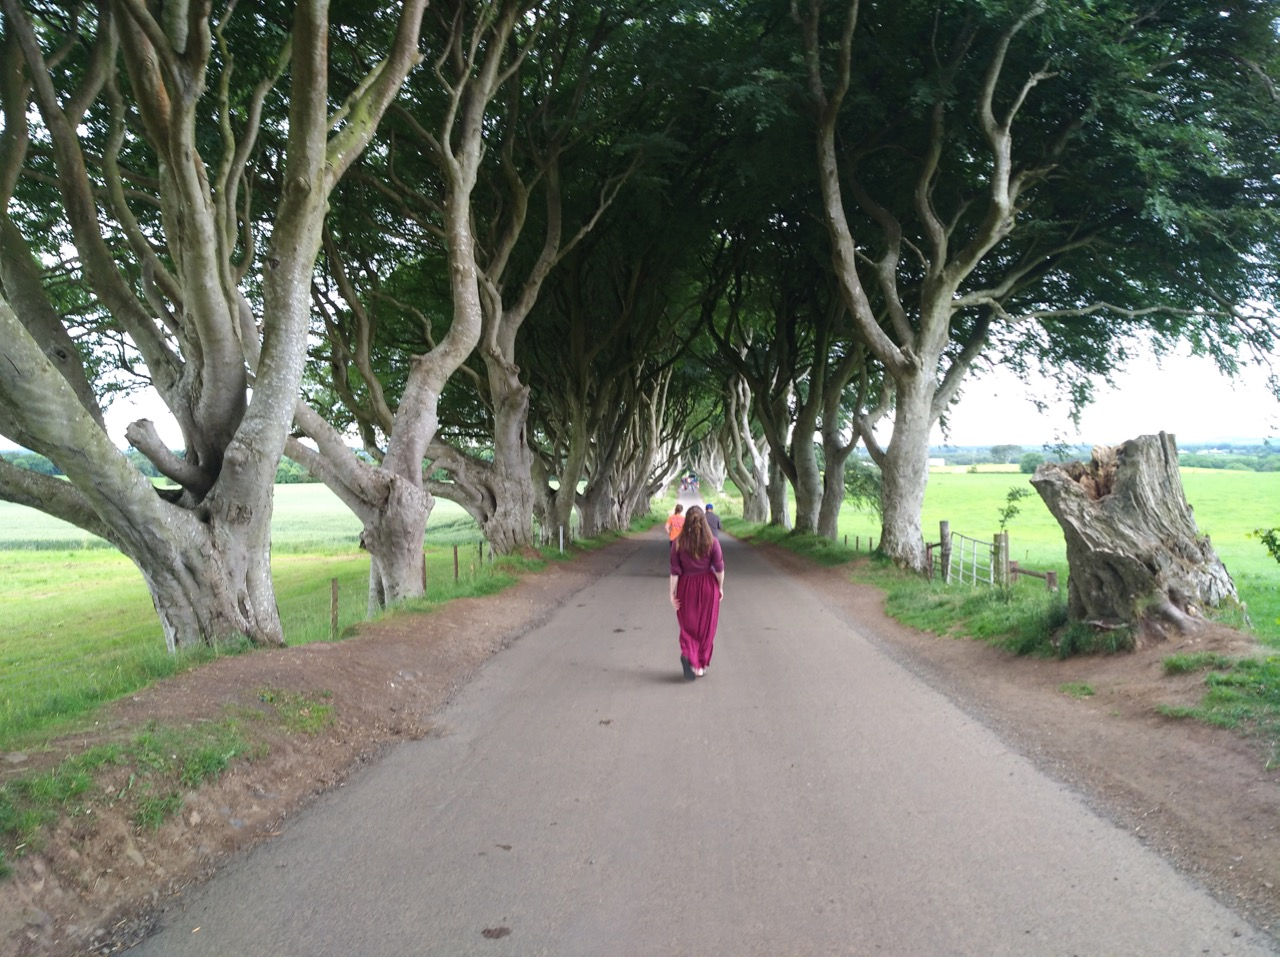 Game of Thrones filming locations in Northern Ireland (35)